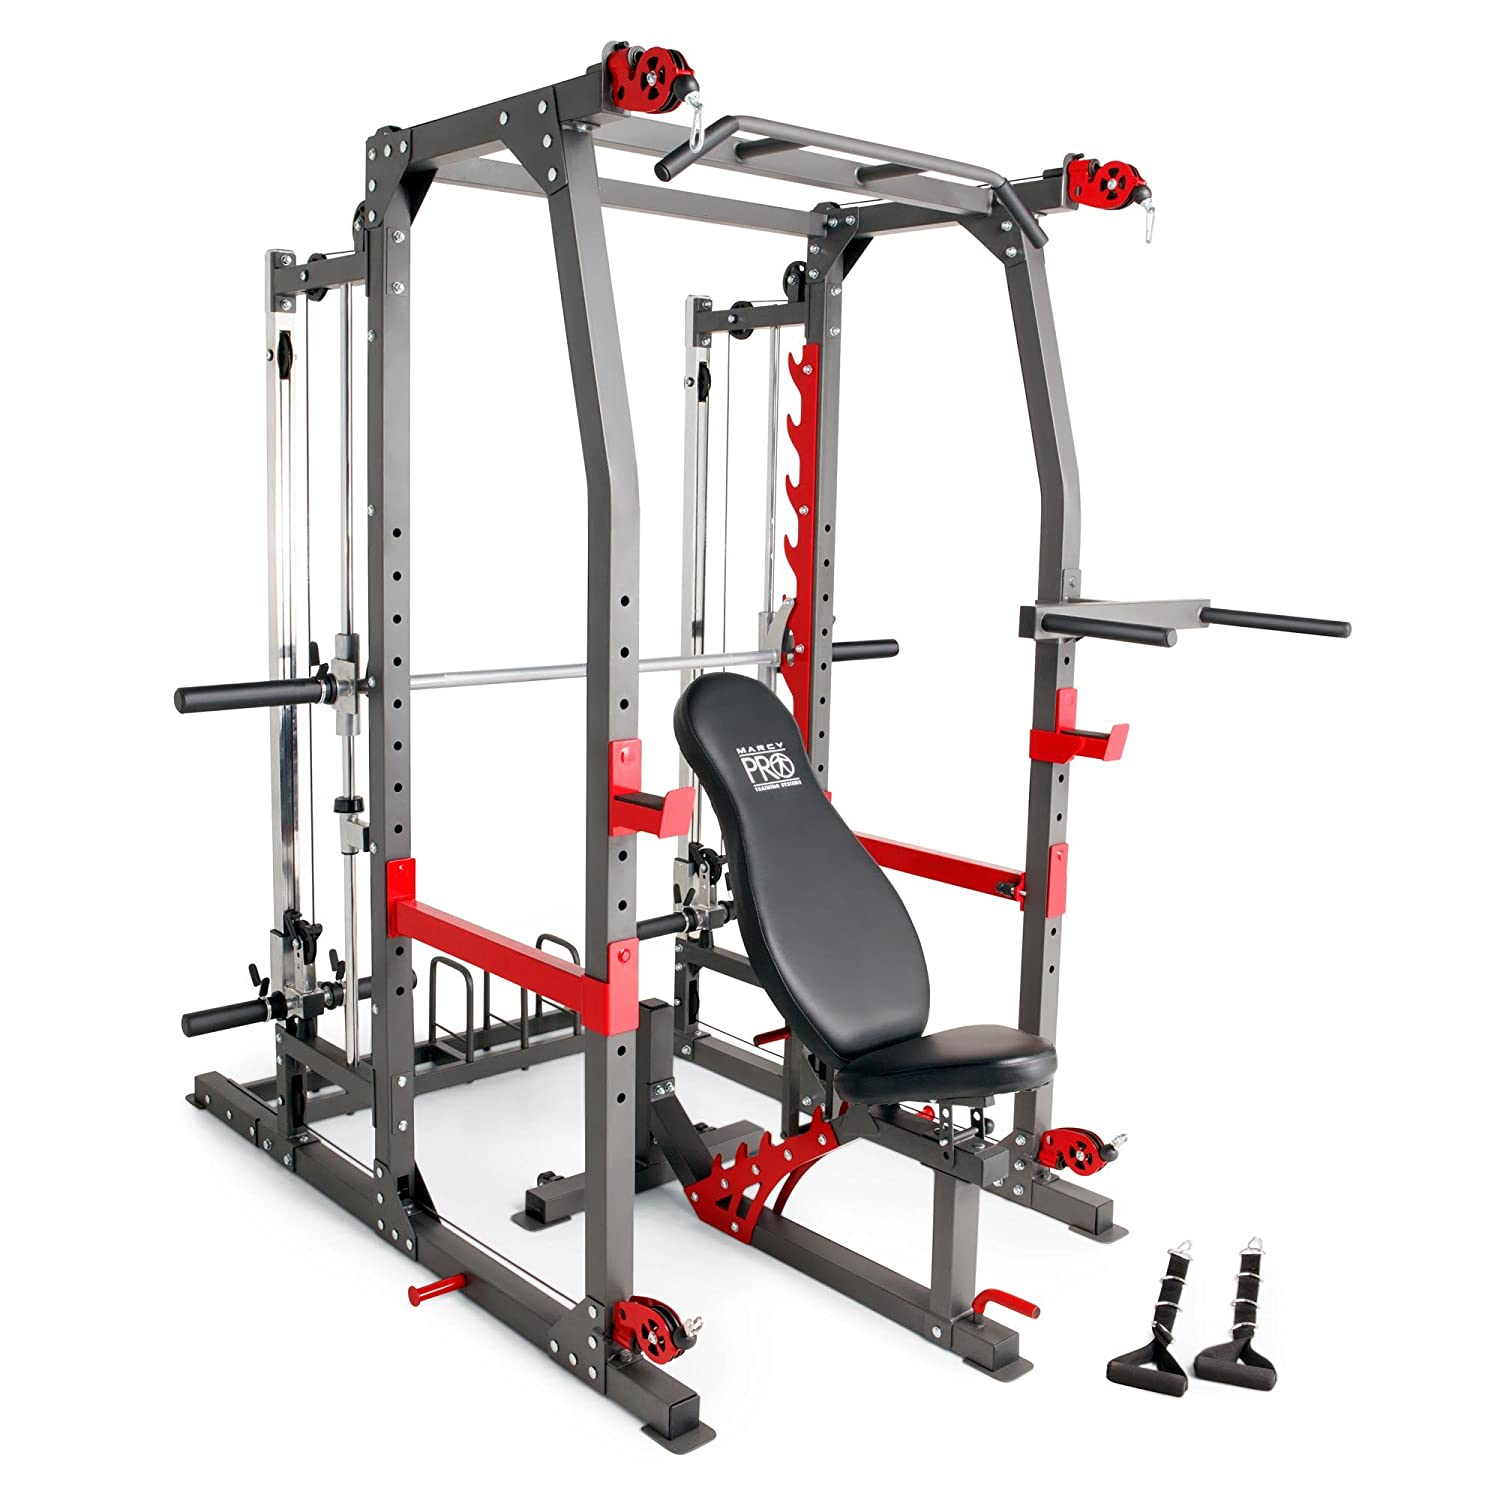 Amazon.com : Impex Marcy Pro Home Gym Total Body Training System : Sports &  Outdoors